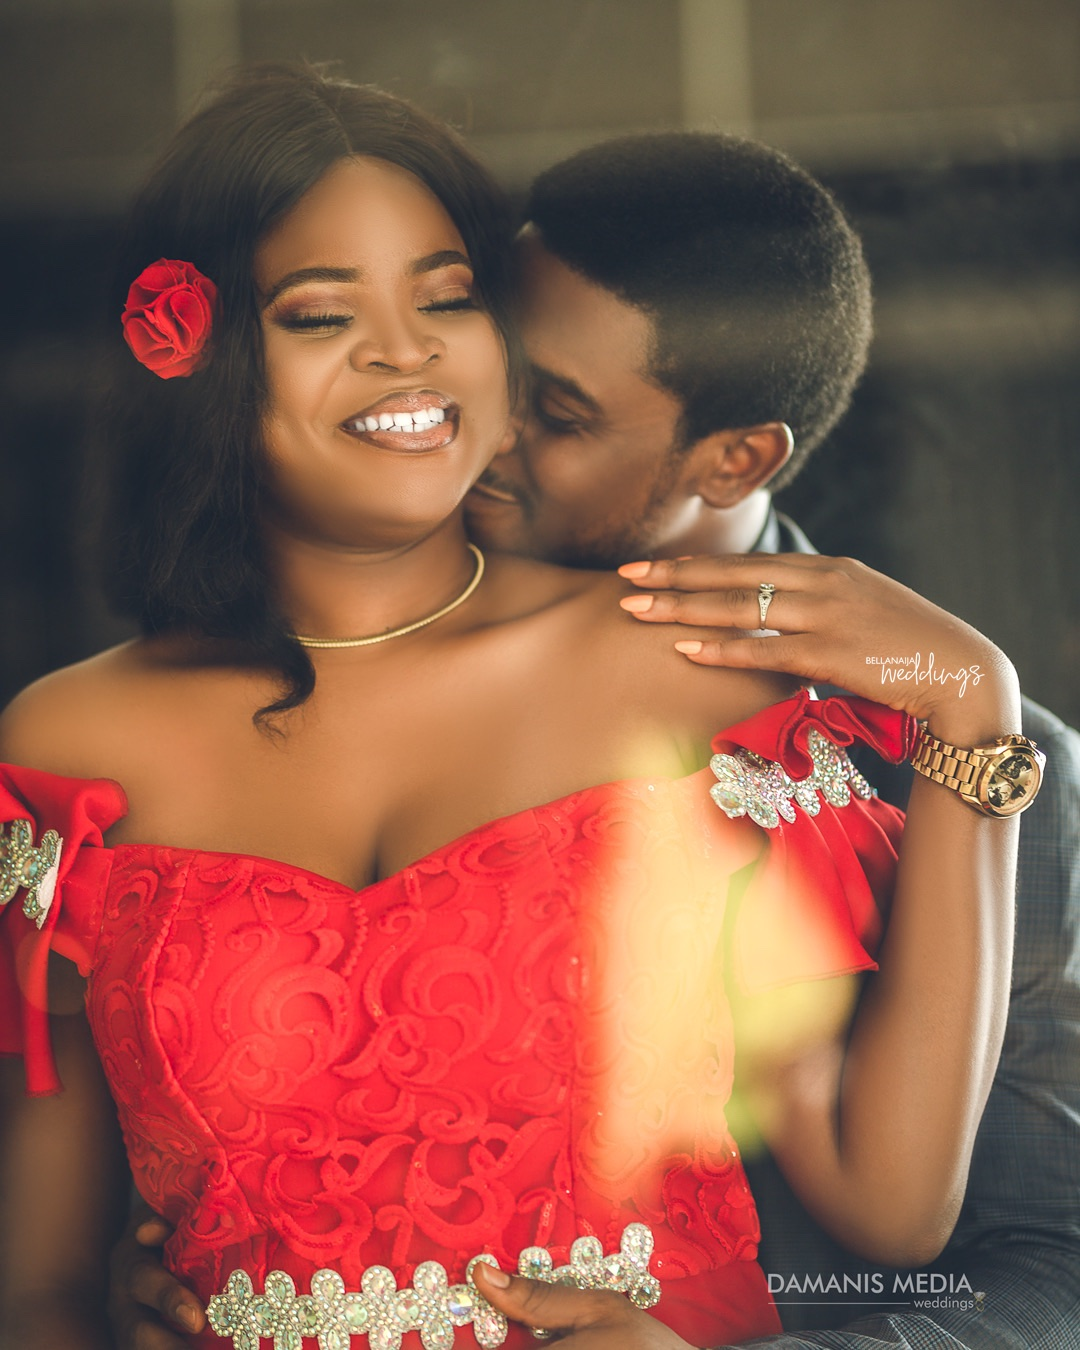 Chidinma & Ugo's Pre-wedding Shoot is the Perfect Start to Your Day